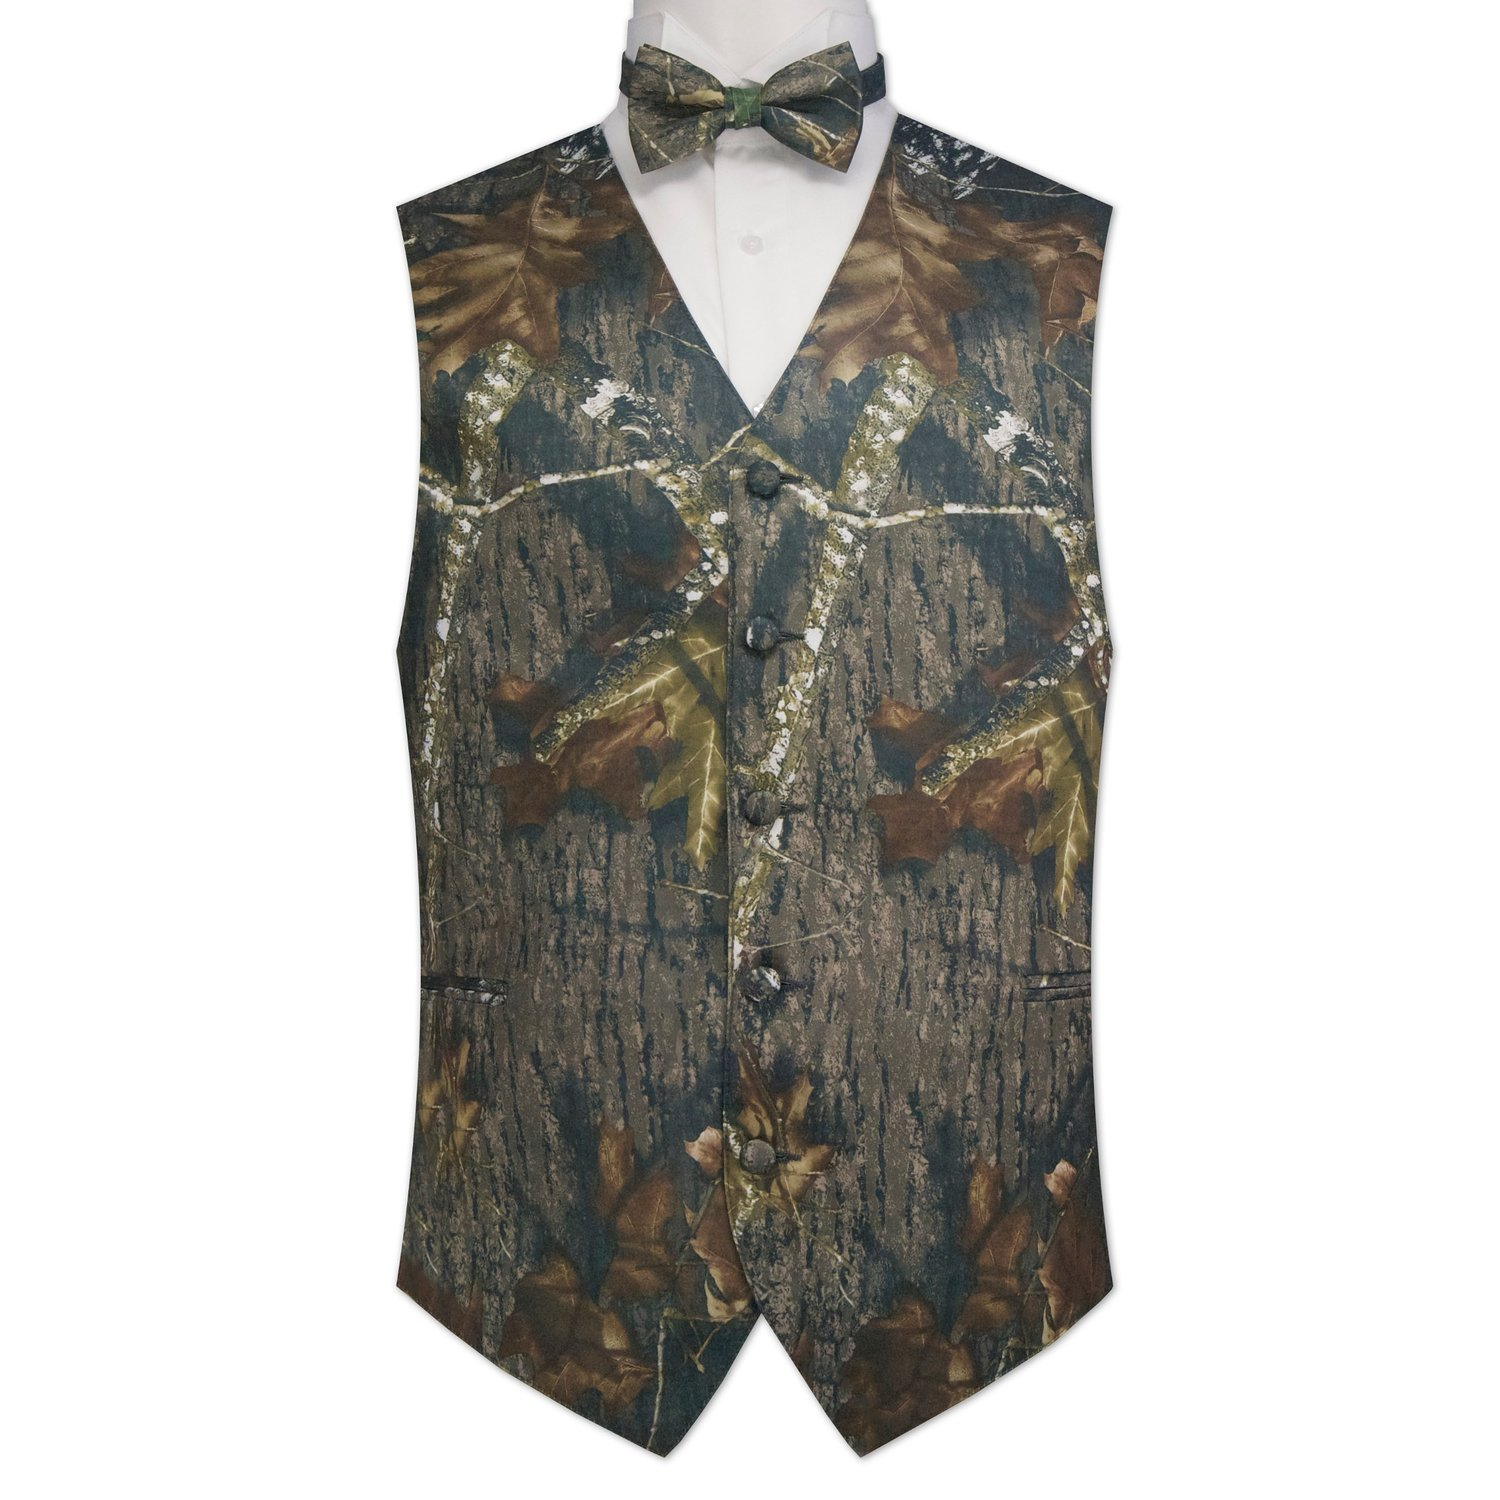 Camouflage Vest & Tie Small with Bow Tie